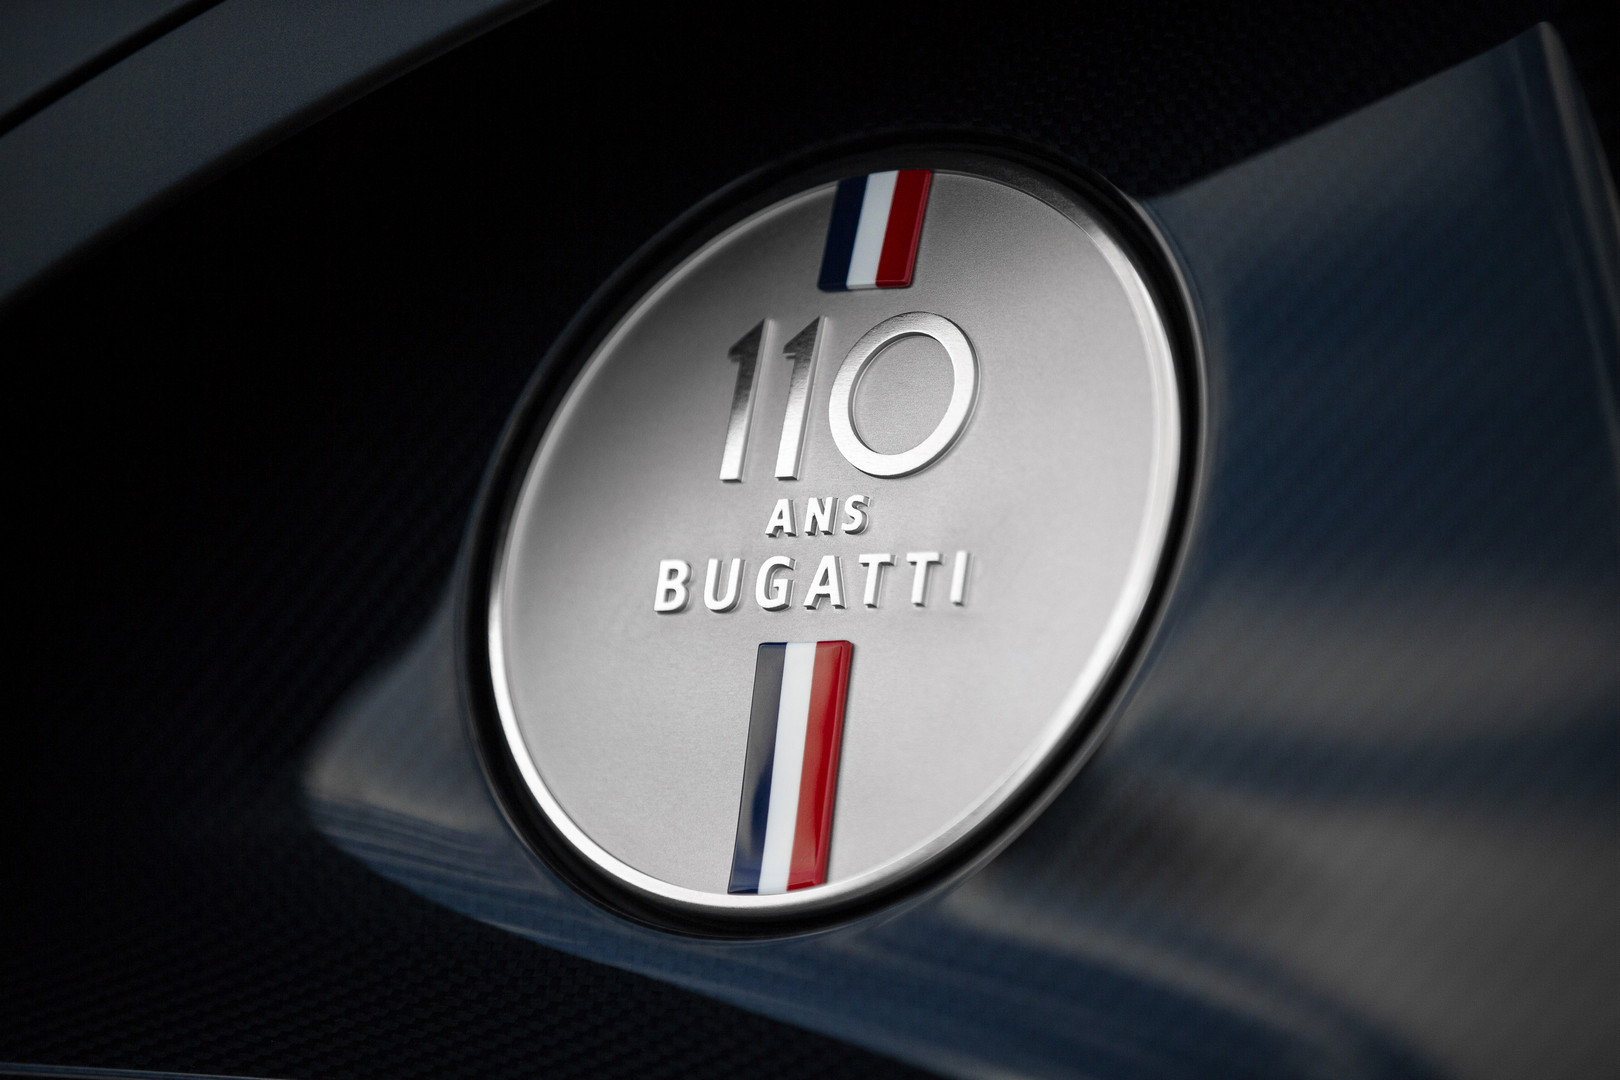 Bugatti celebrates 110 years of production with Chiron Sport '110 ans'